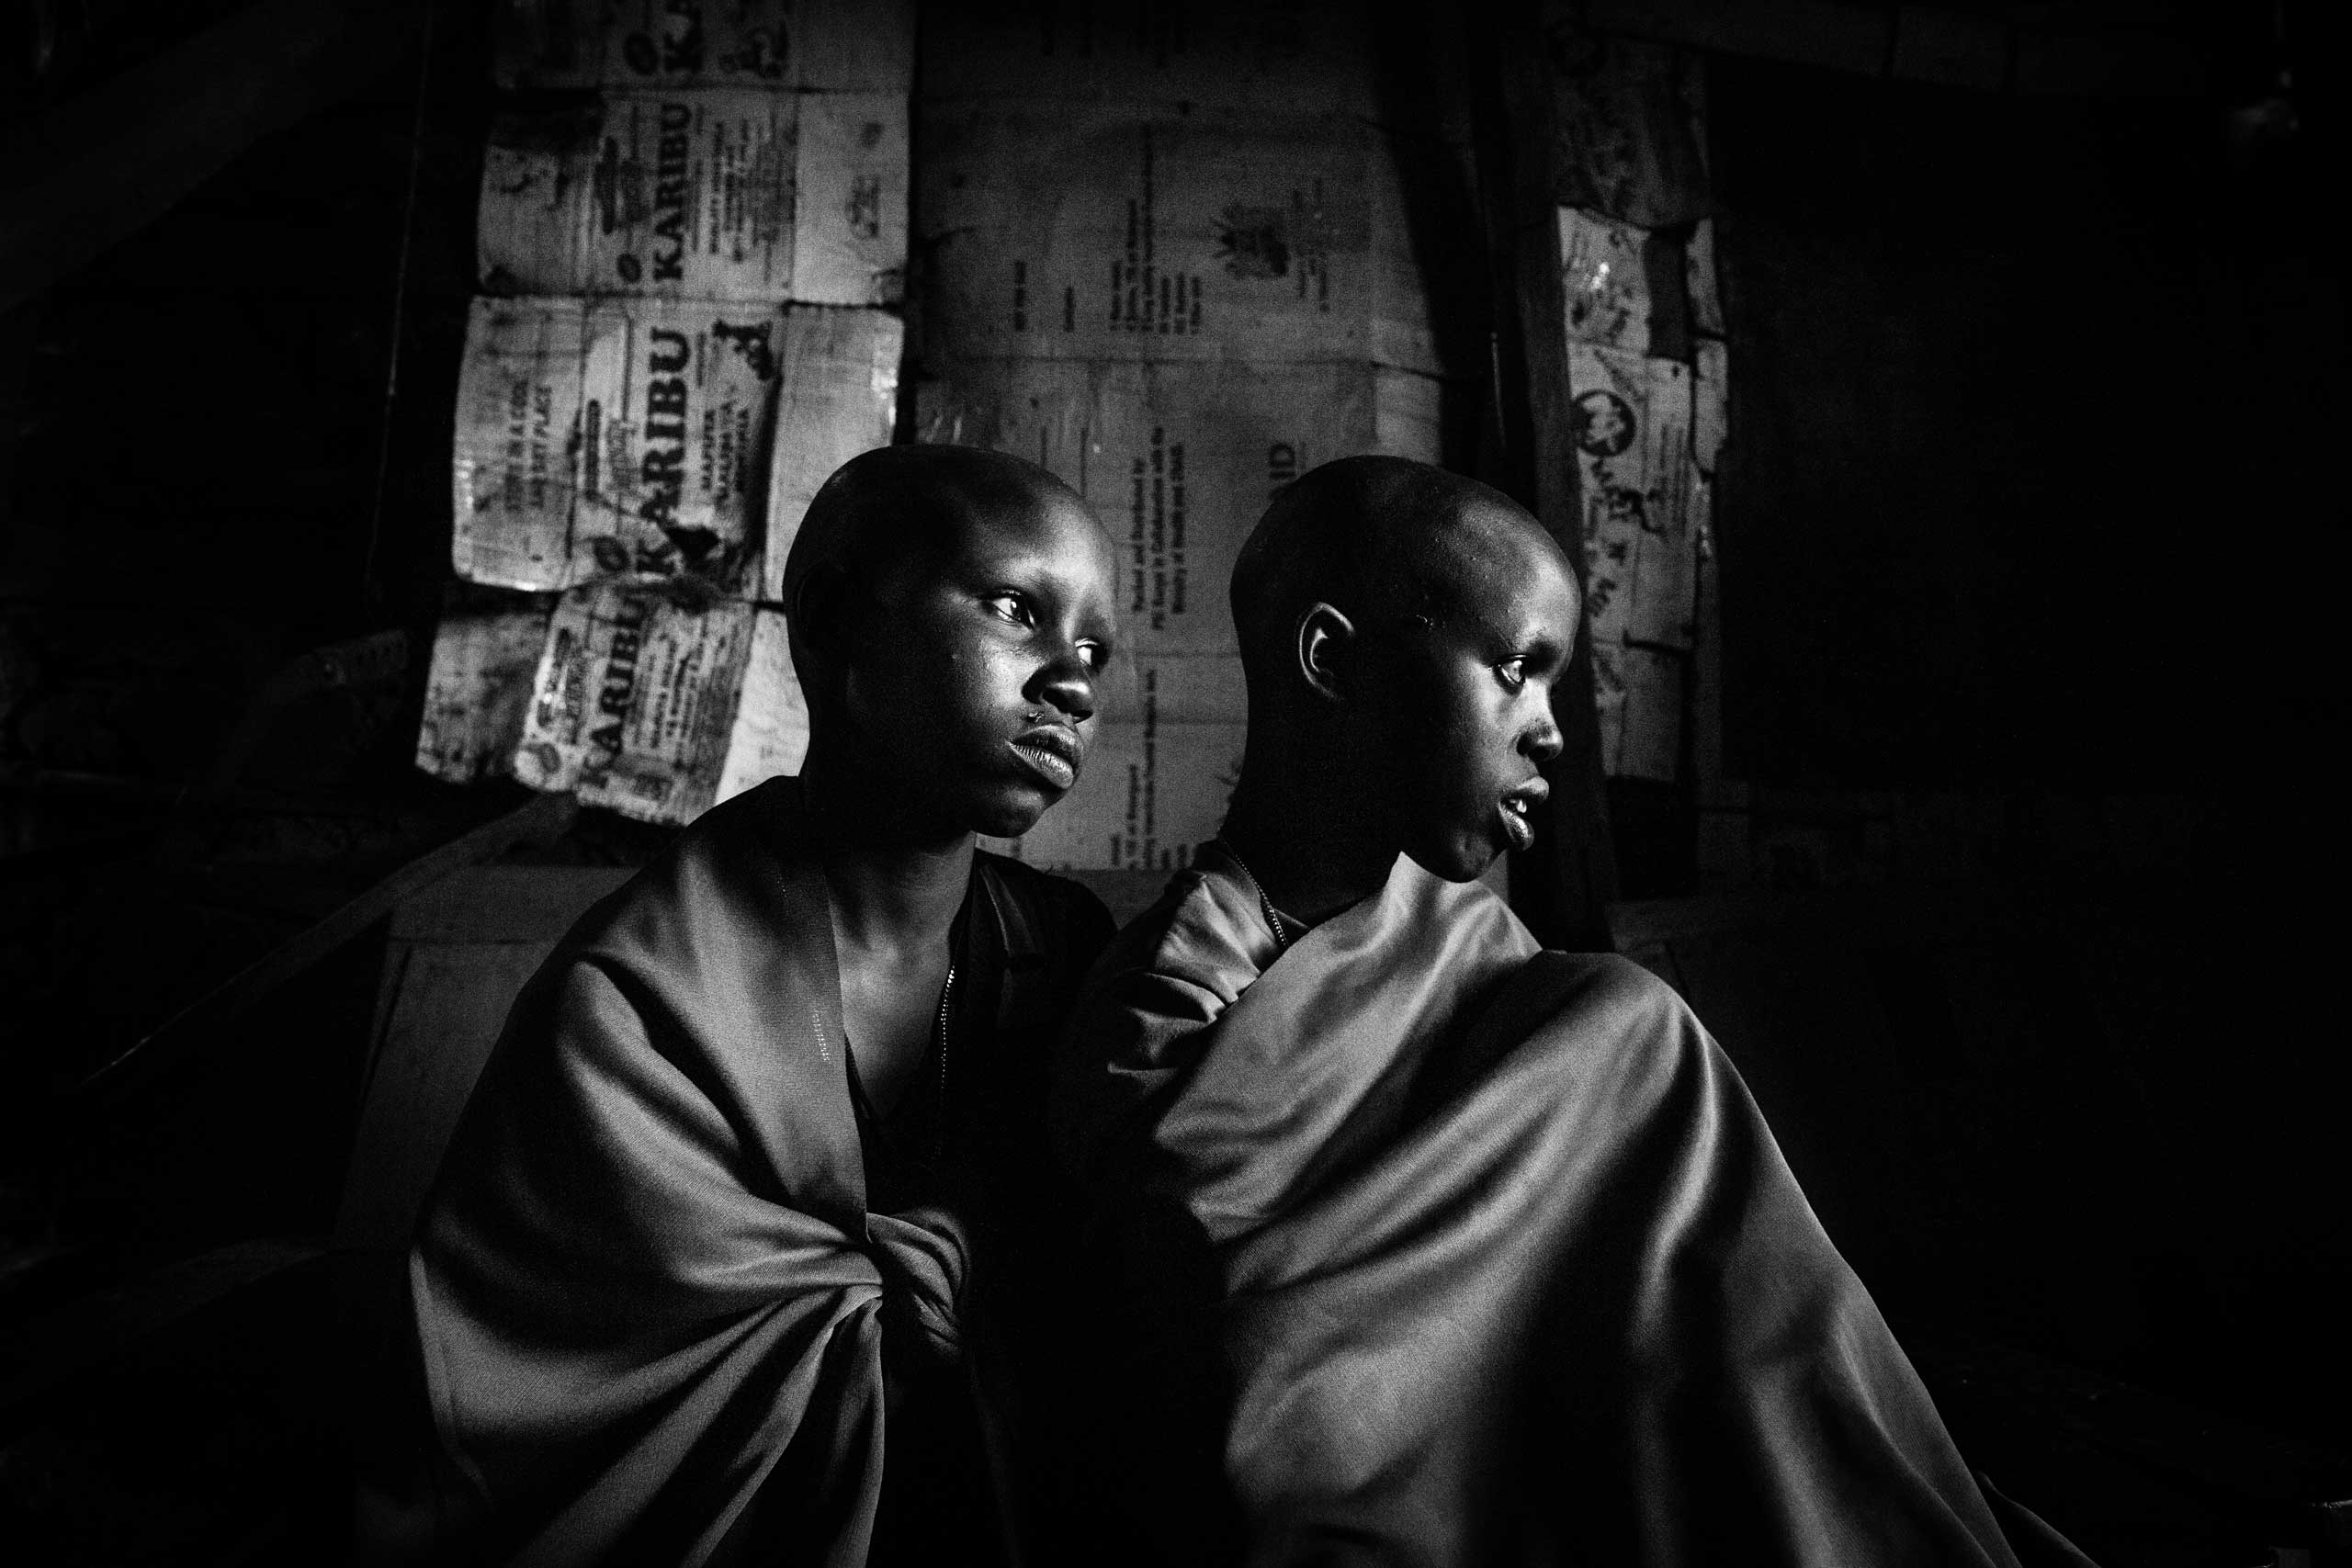 Maasai girls Isina and Nasirian, a day before their planned circumcision. The girls' names have been changed in this piece.